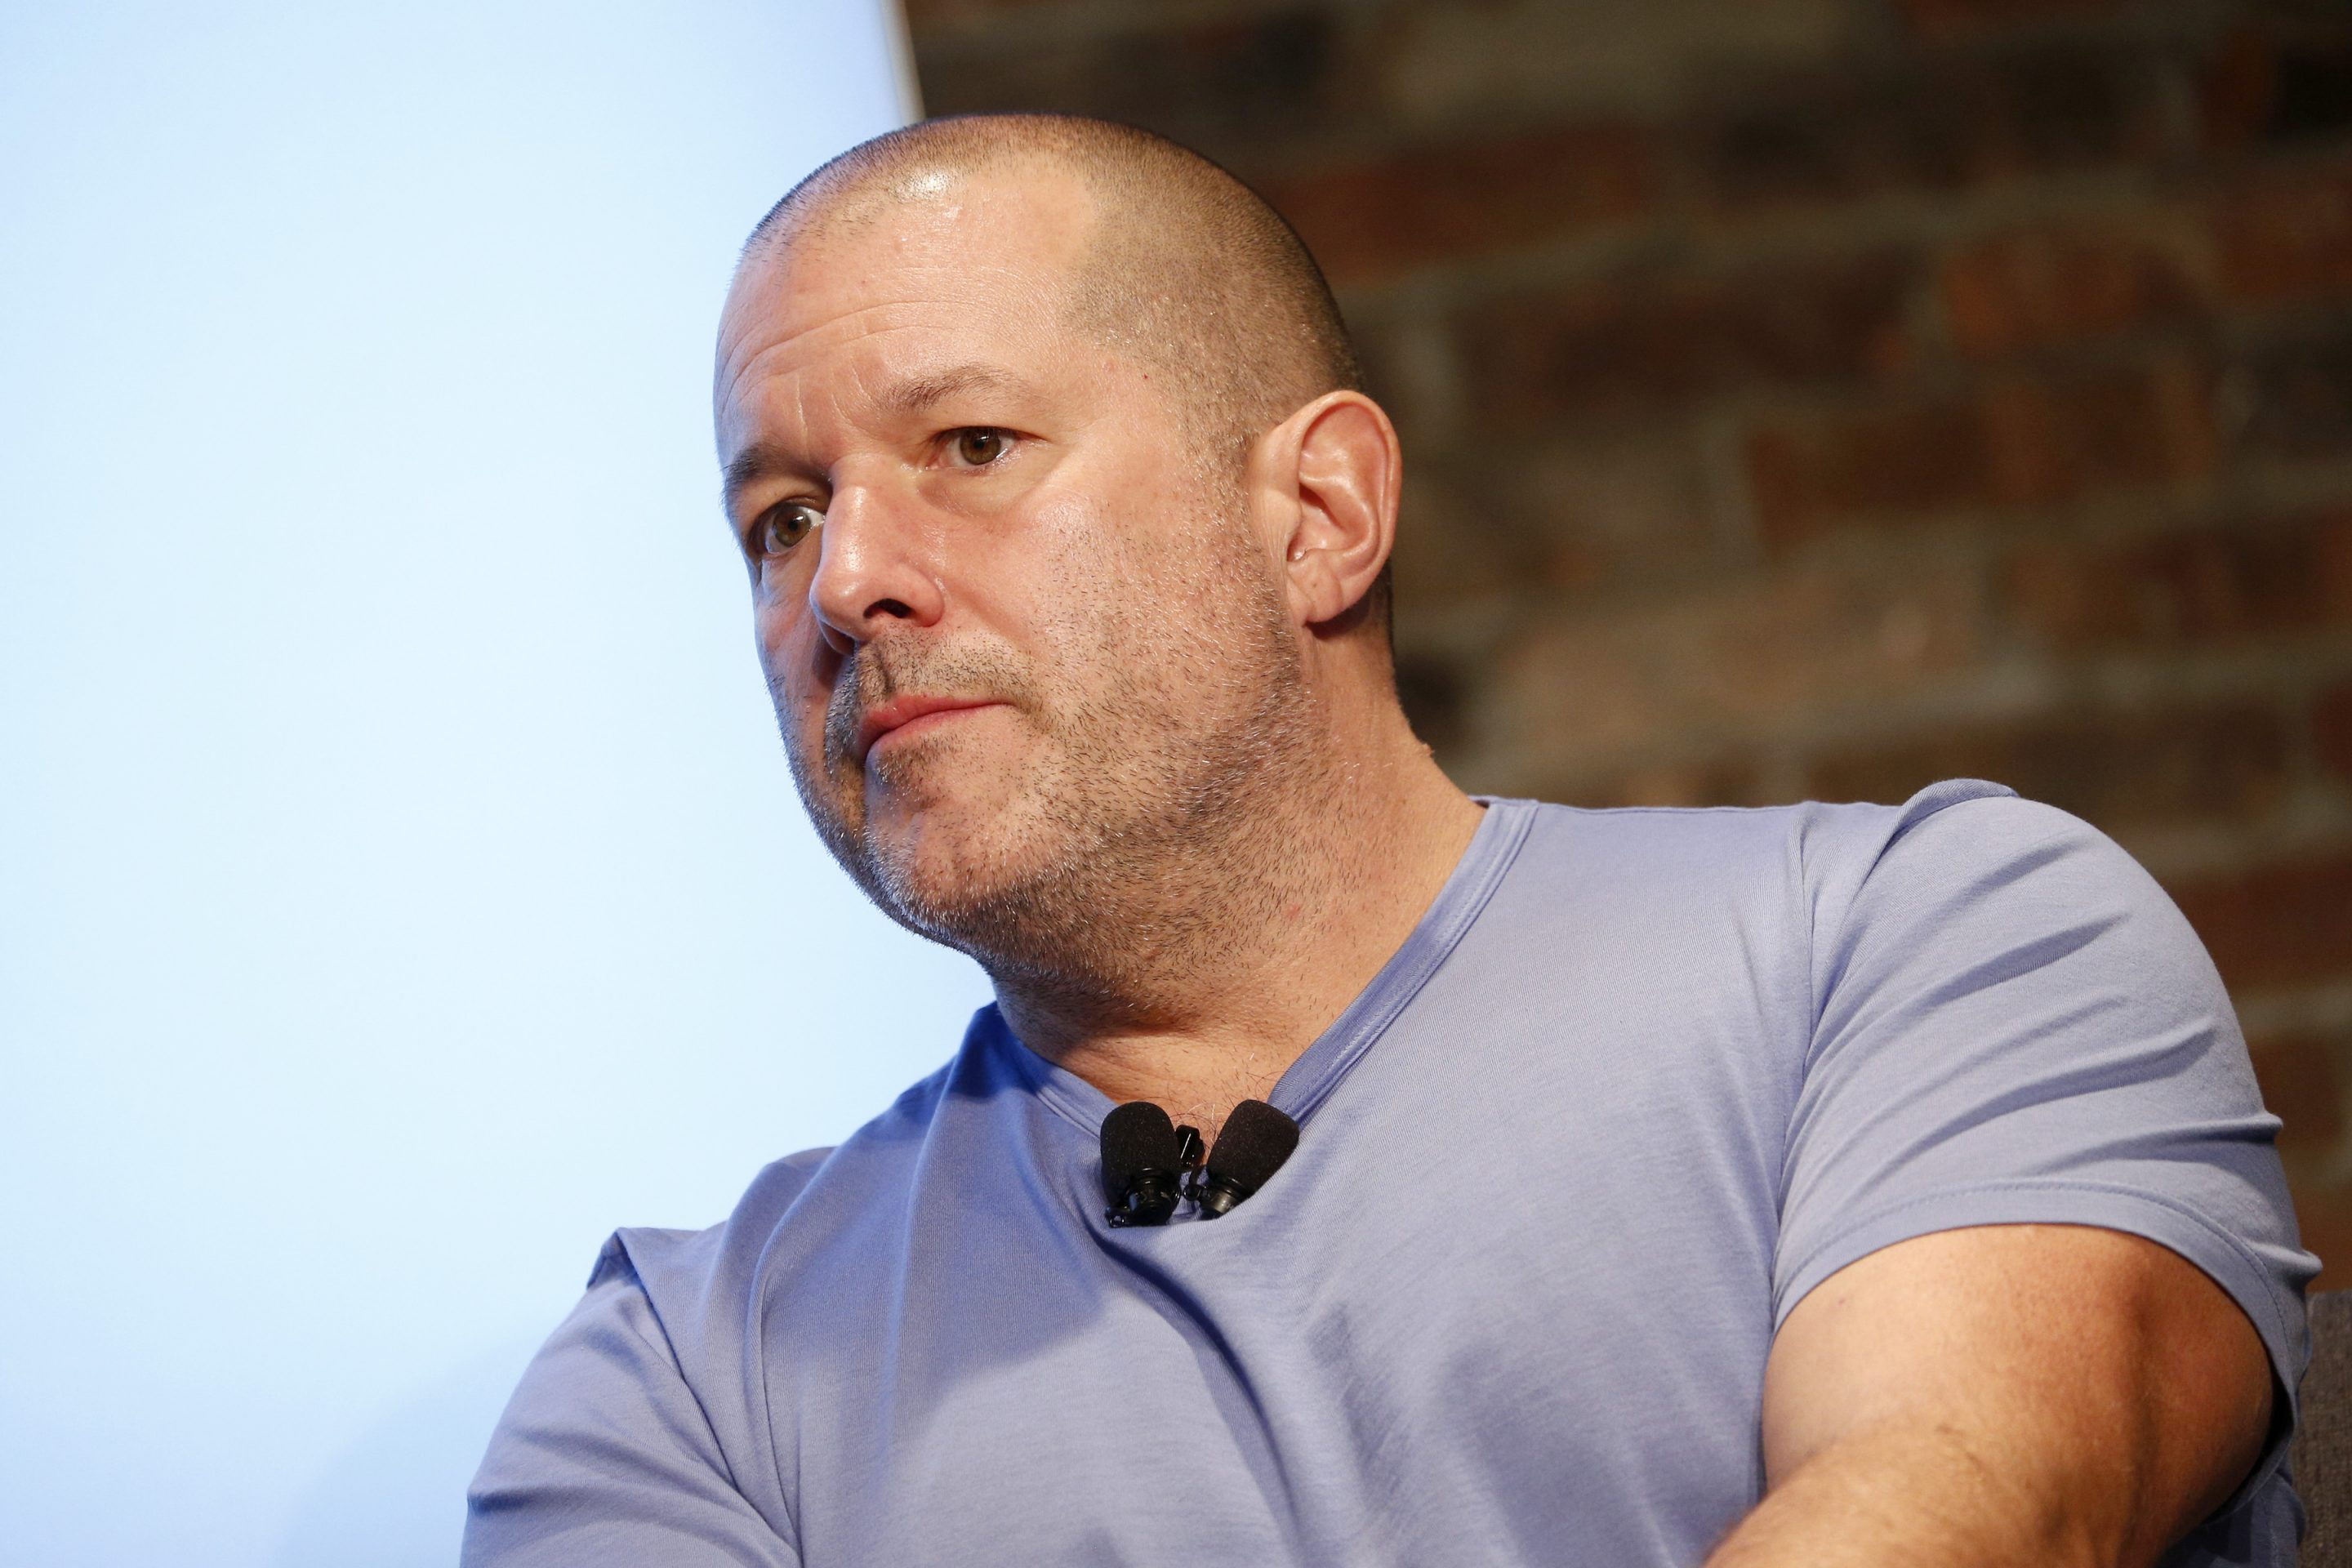 Jony Ive, Apple's chief design officer and the creative force behind the iMac, iPod, and iPhone, has announced he is leaving Apple.